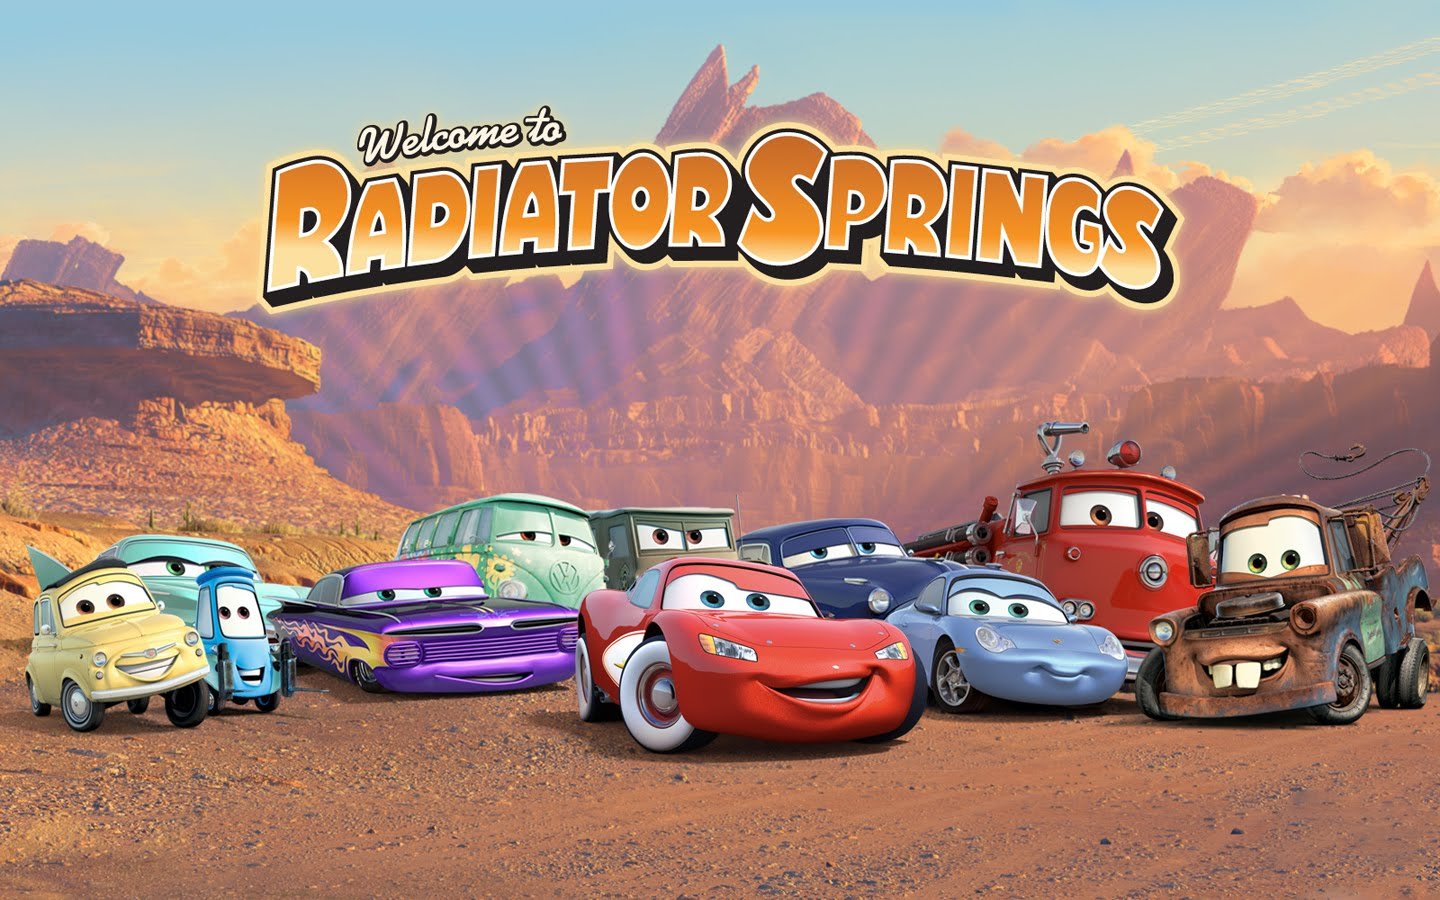 Welcome to Radiator Springs 1440x900